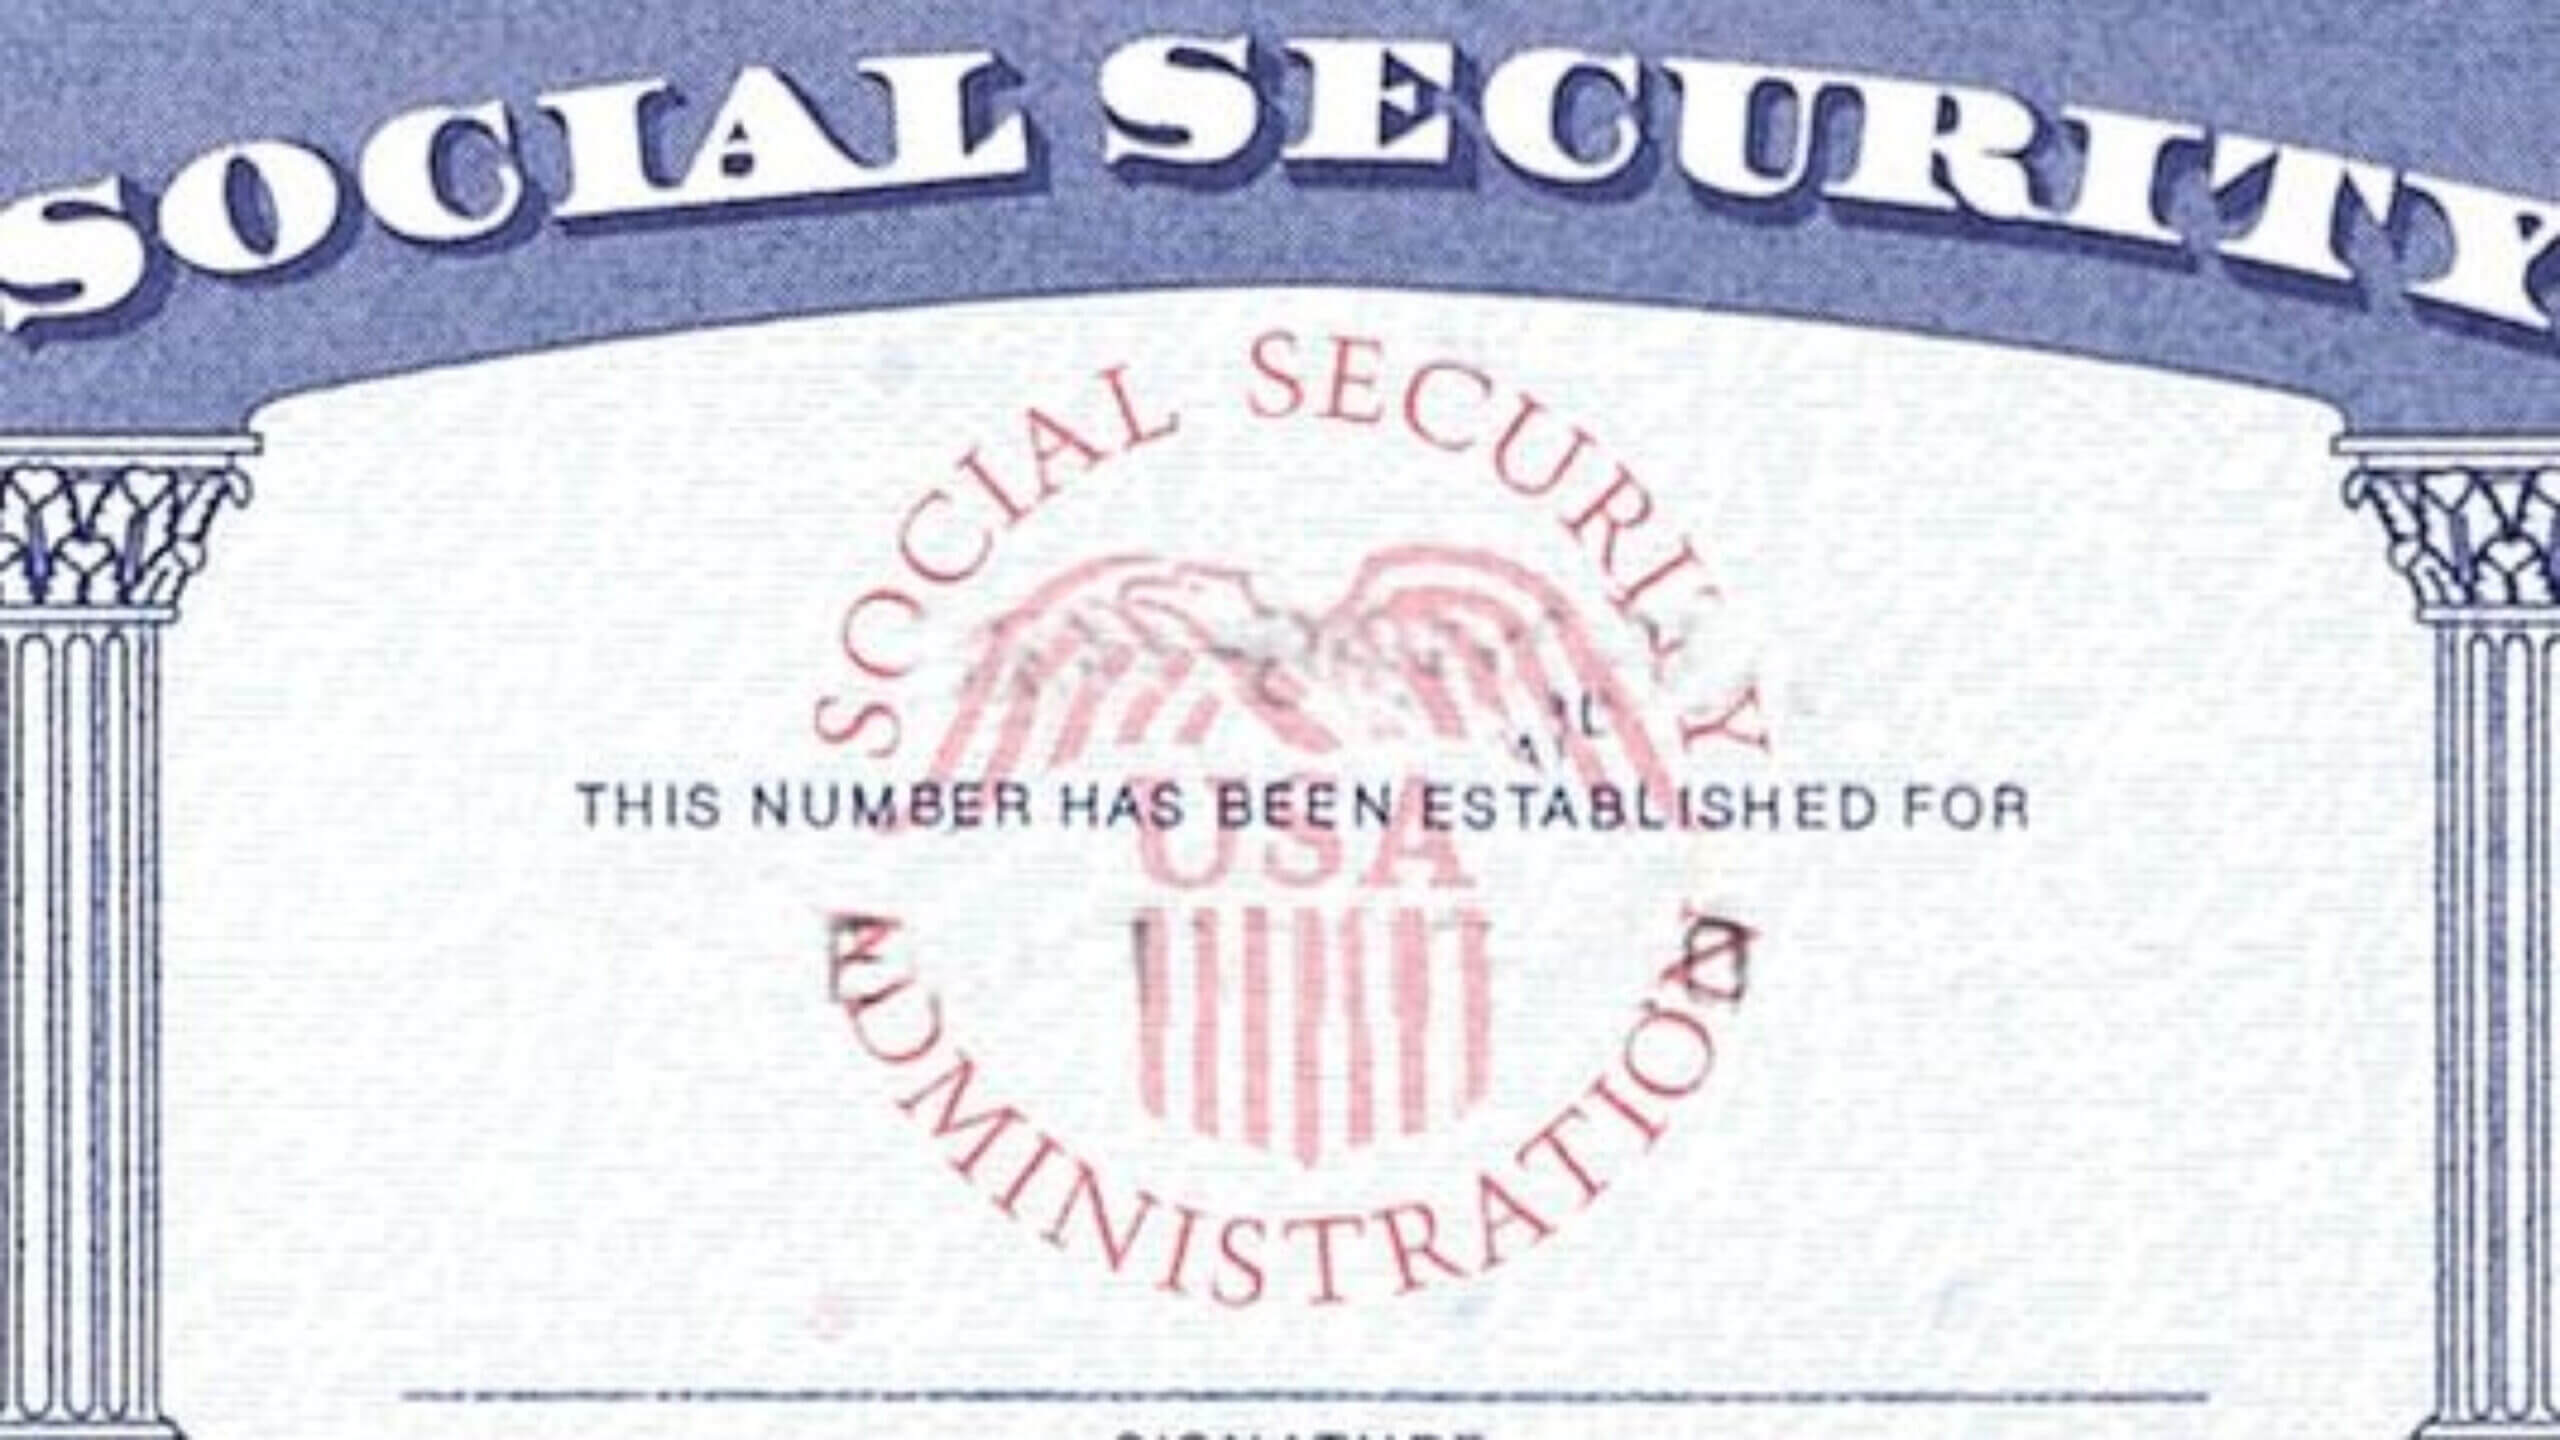 7 Social Security Card Template Psd Images - Social Security With Regard To Social Security Card Template Photoshop